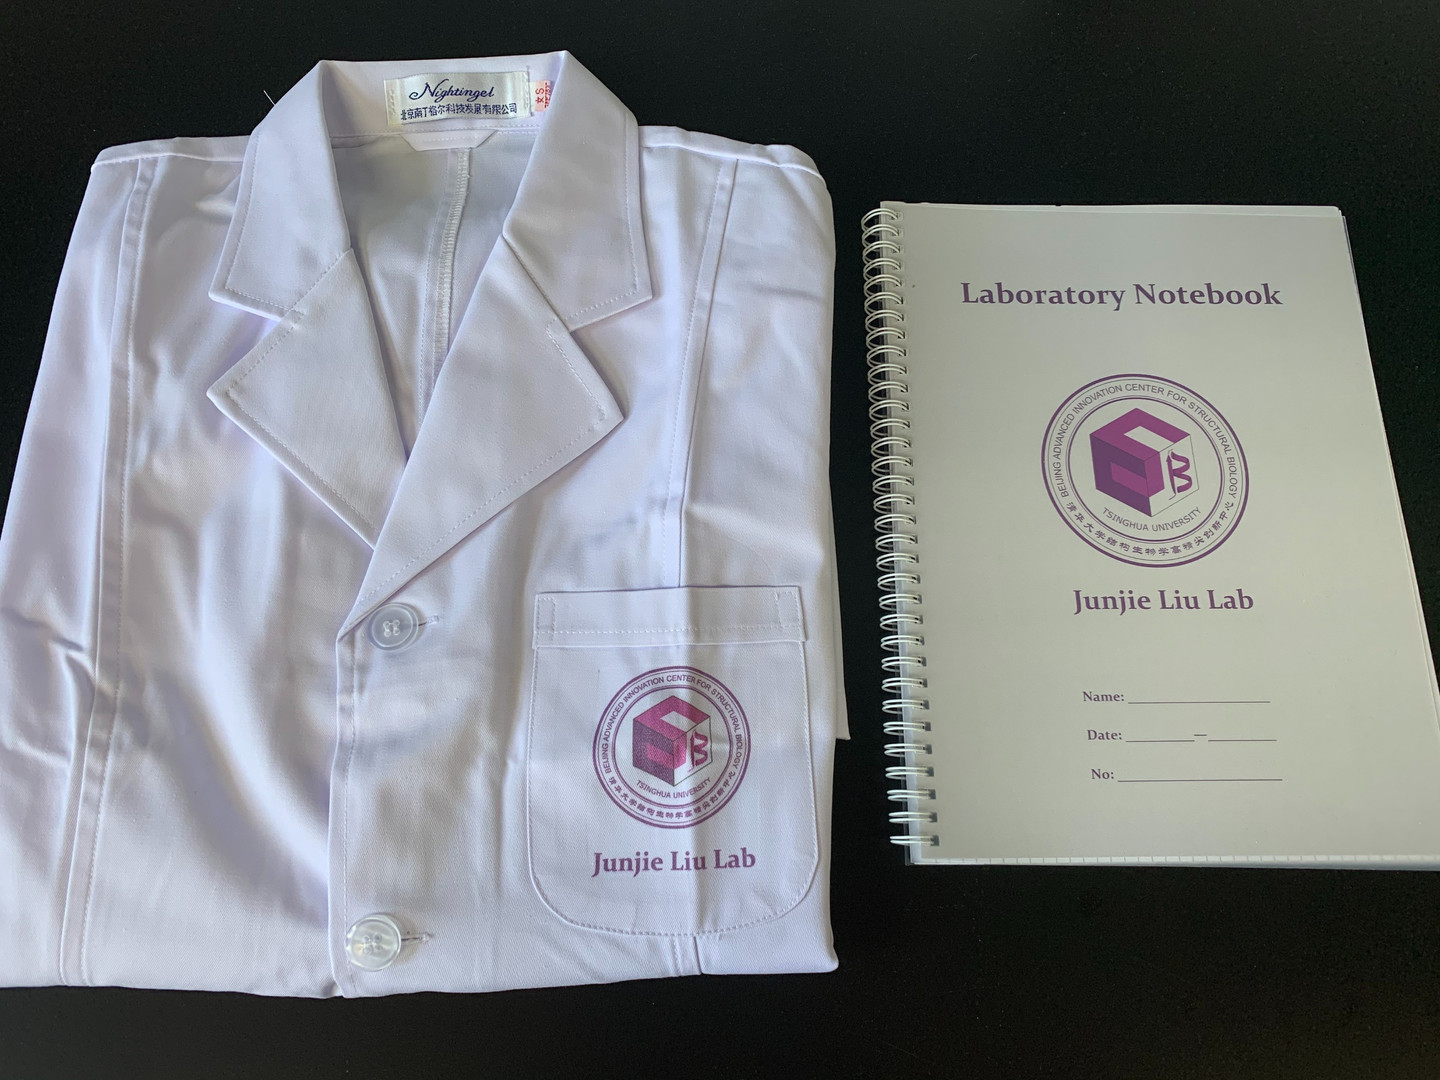 Lab coat and notebook